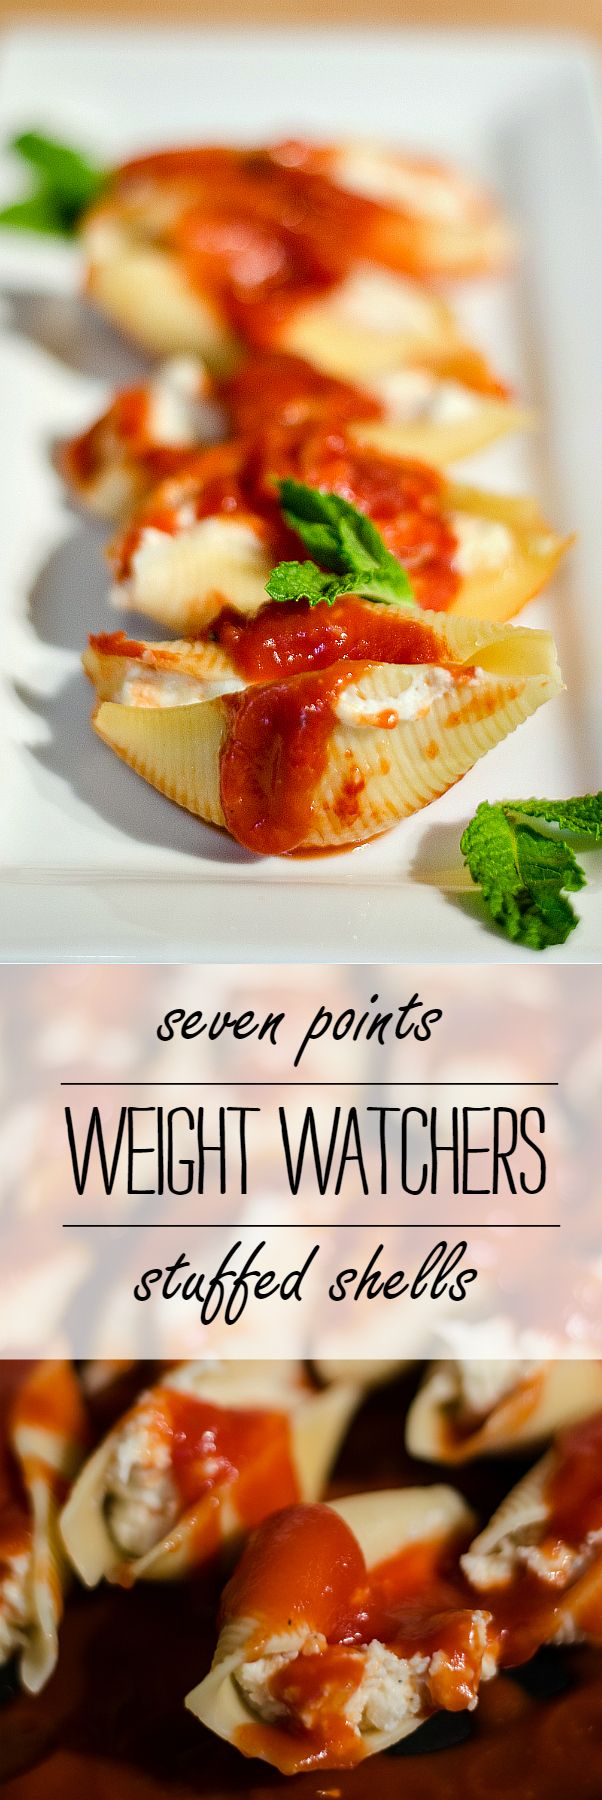 weight watchers stuffed shells - It All Started With Paint